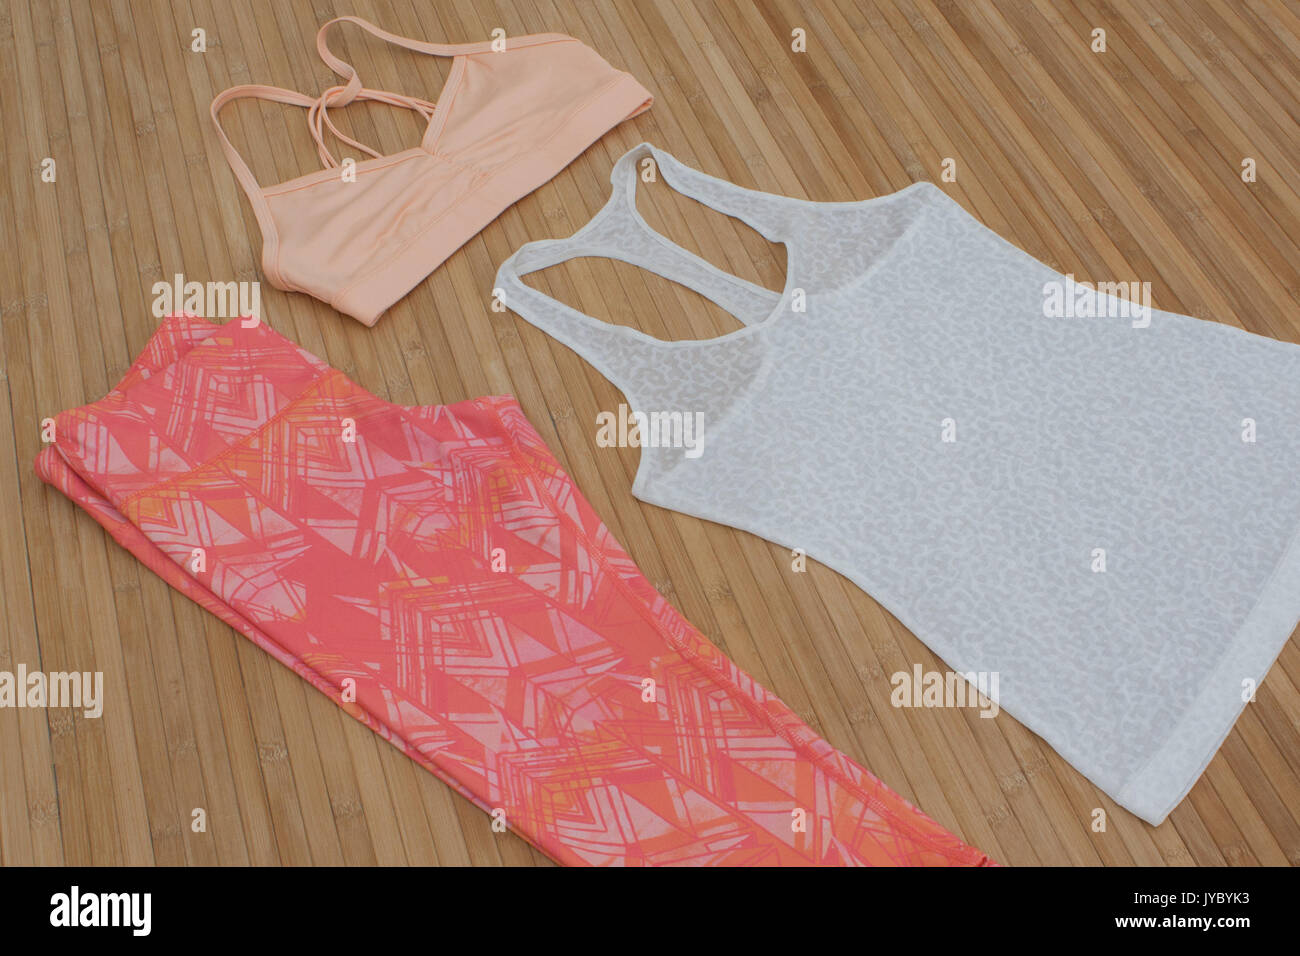 fitness, sportswear, yoga, leggings, capris, flatlay, bright, patterns, bamboo, workout, fashion, exercise, pink, coral, sports bra, tank top - Stock Image